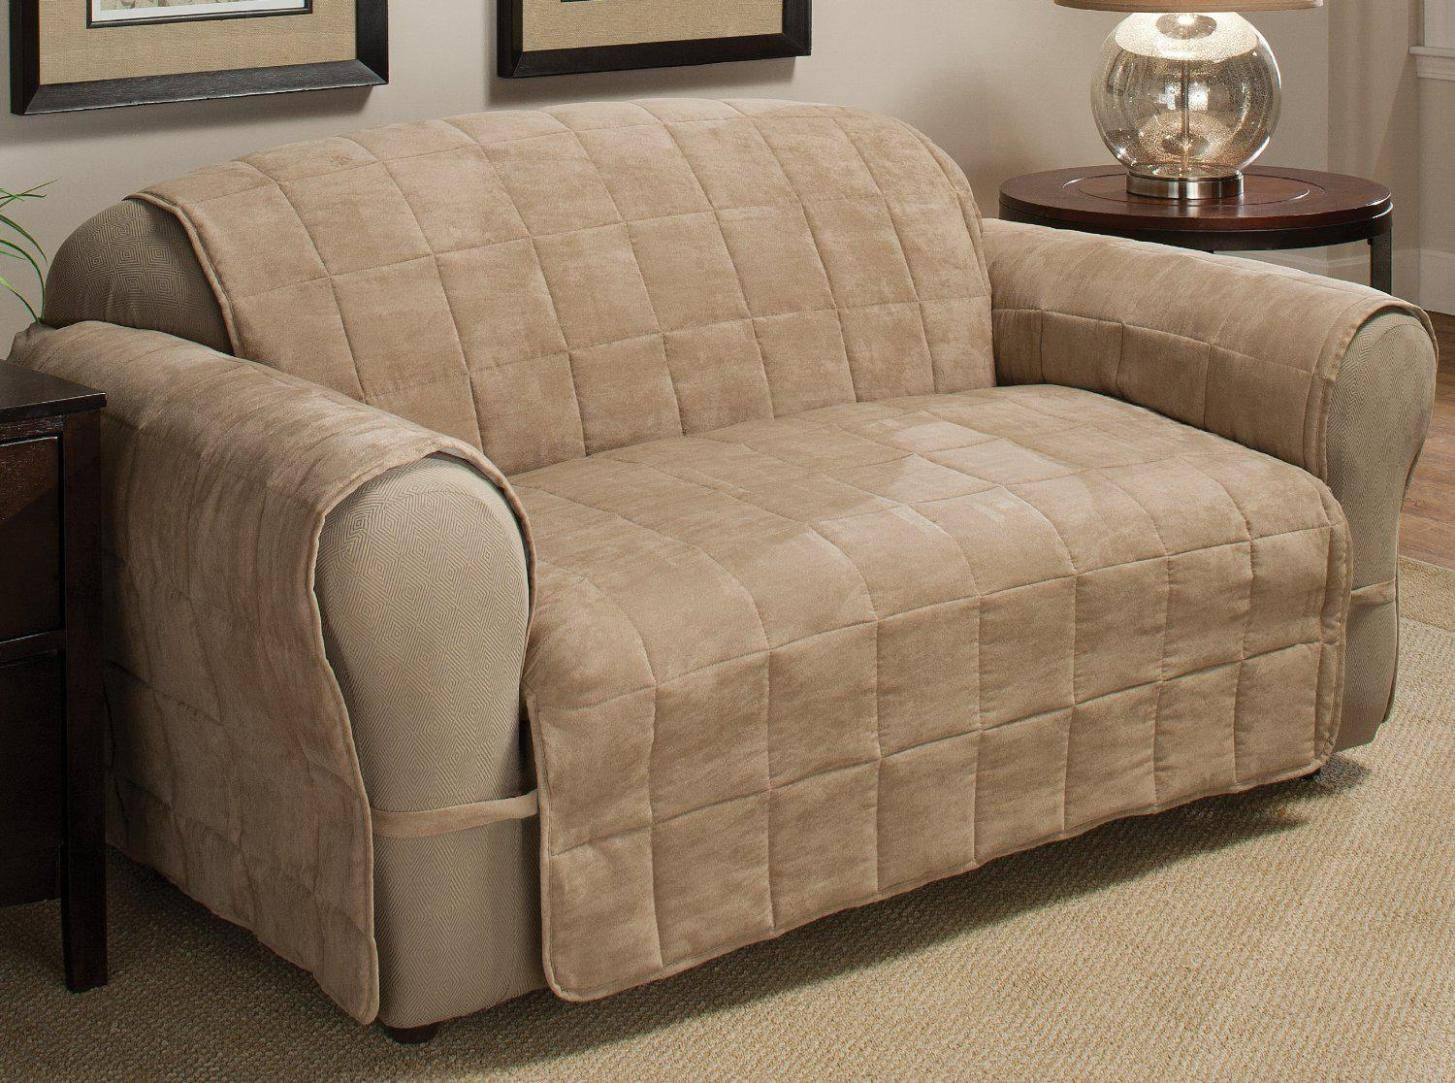 Furniture & Rug: Chic Recliner Covers For Prettier Recliner Ideas Regarding Sofa And Chair Covers (View 9 of 30)